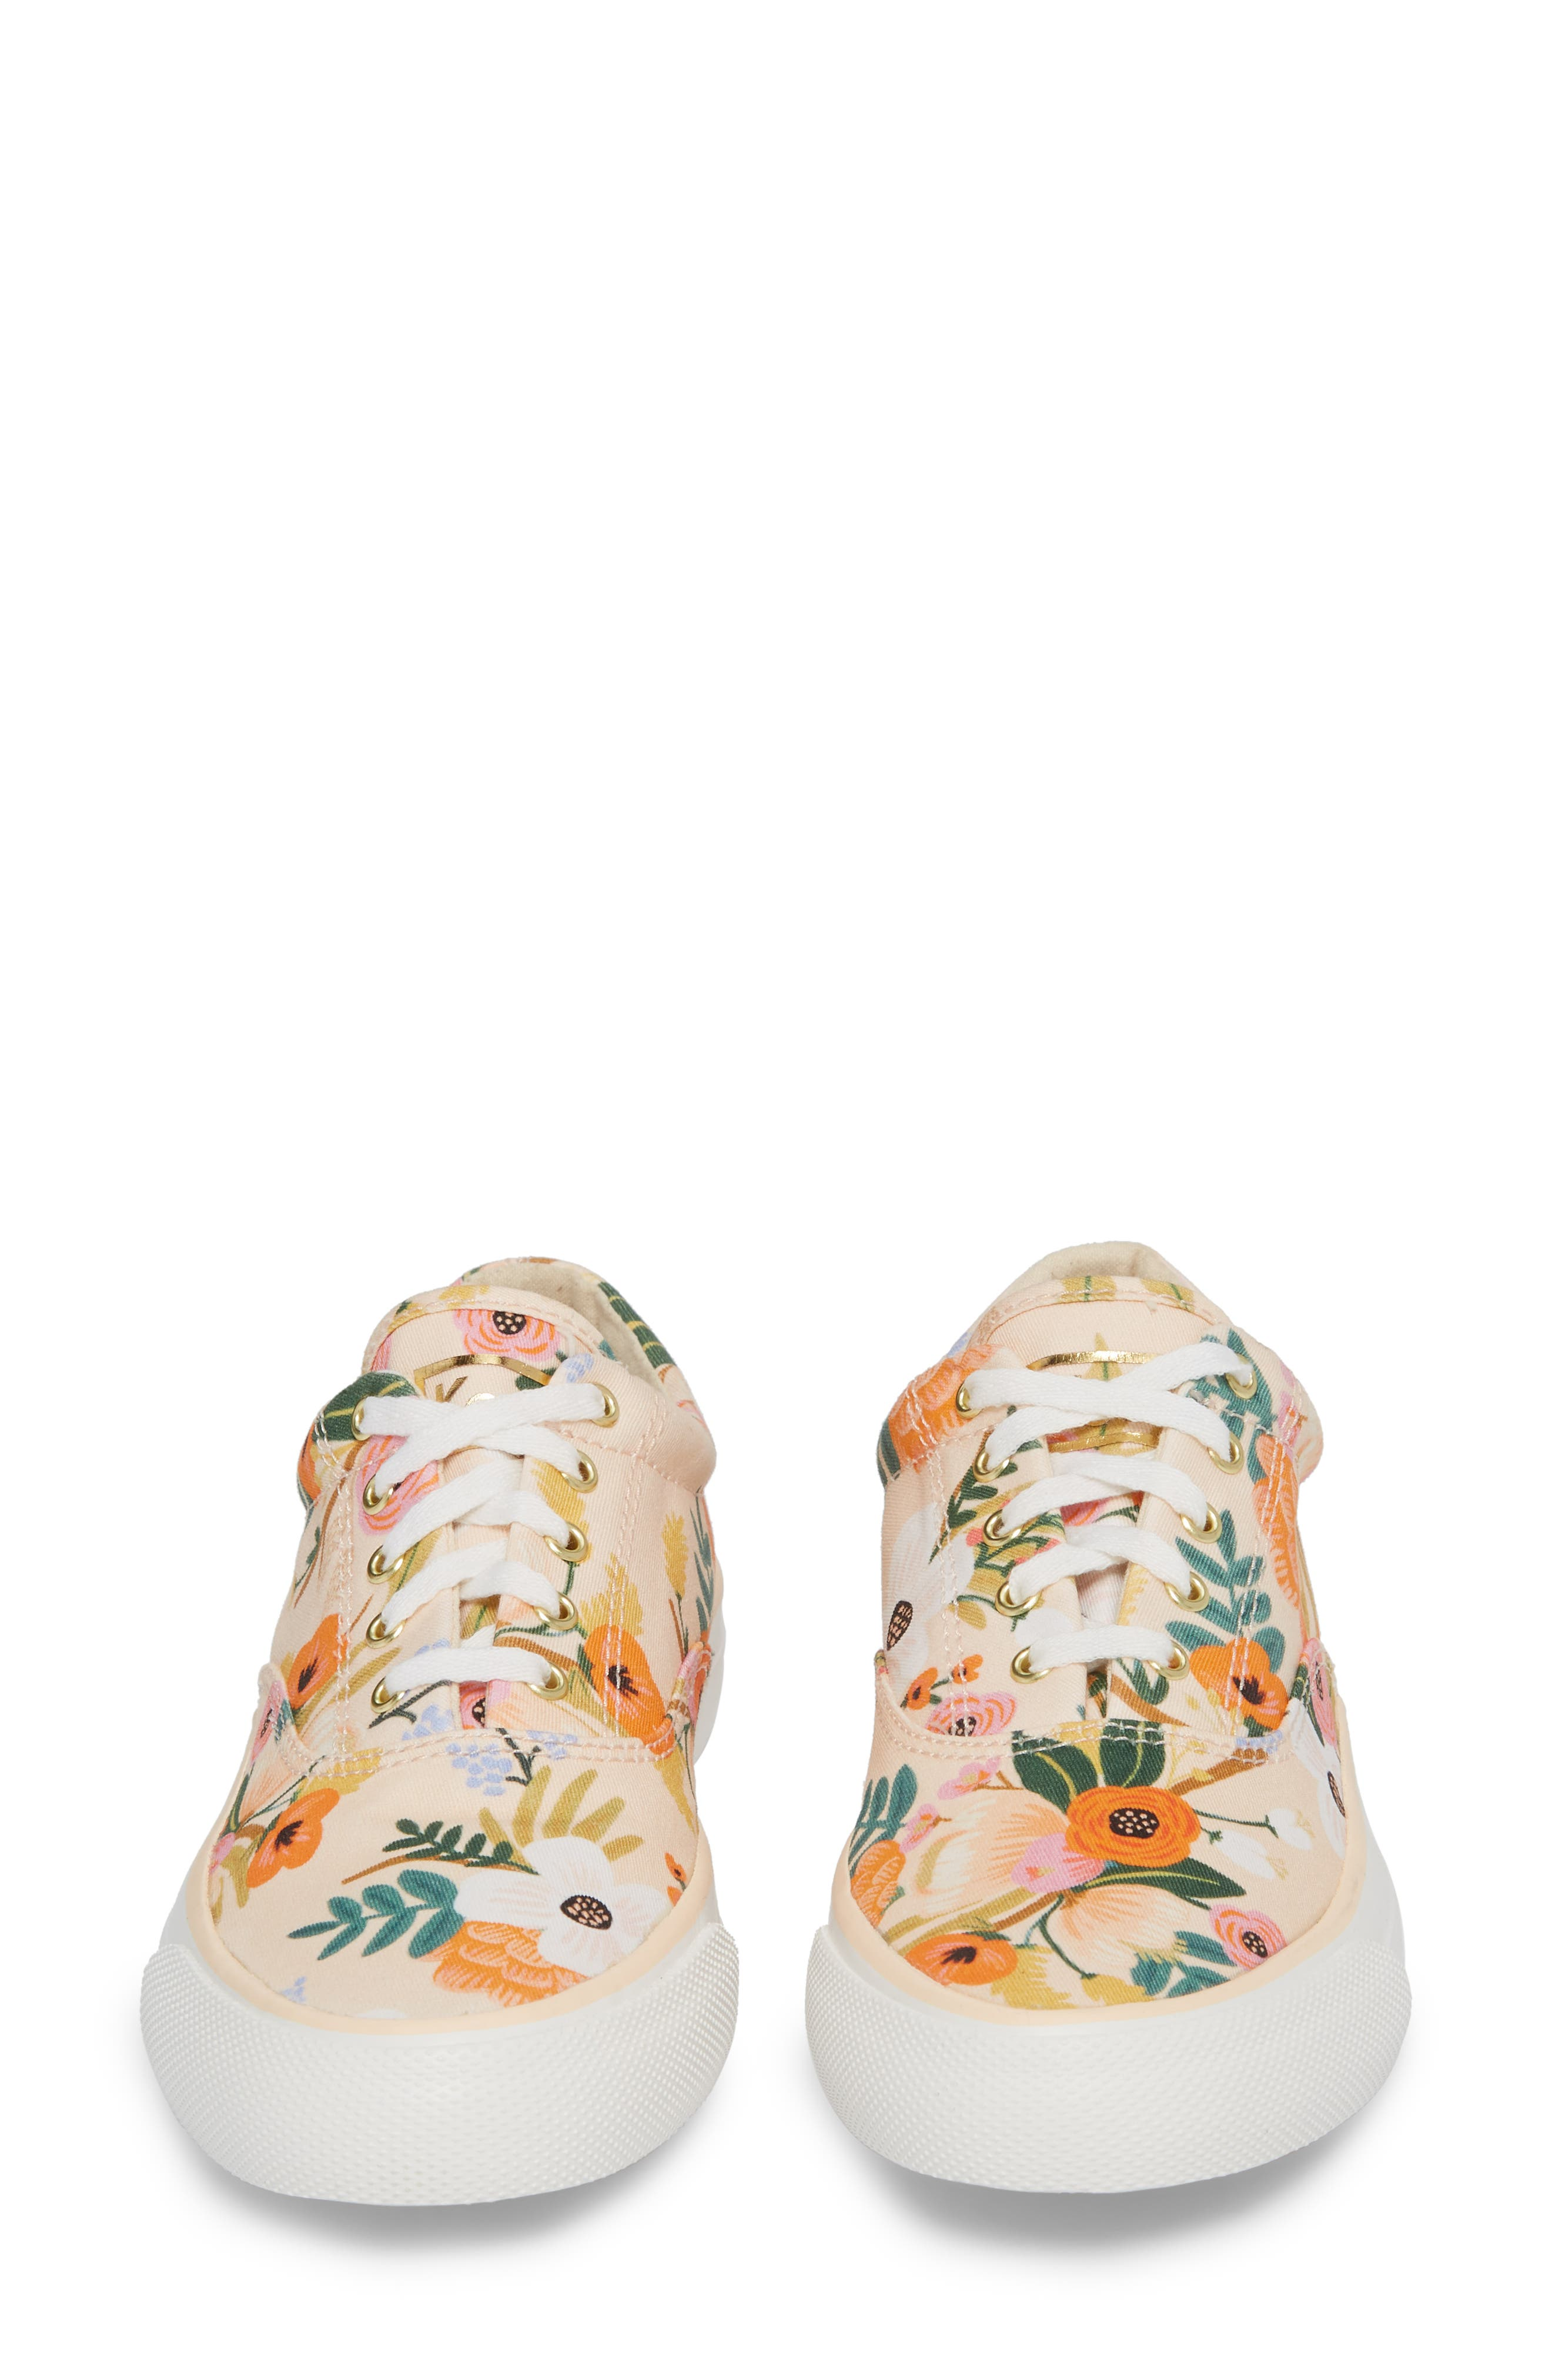 x Rifle Paper Co. Anchor Lively Floral Slip-On Sneaker,                             Alternate thumbnail 5, color,                             Pink